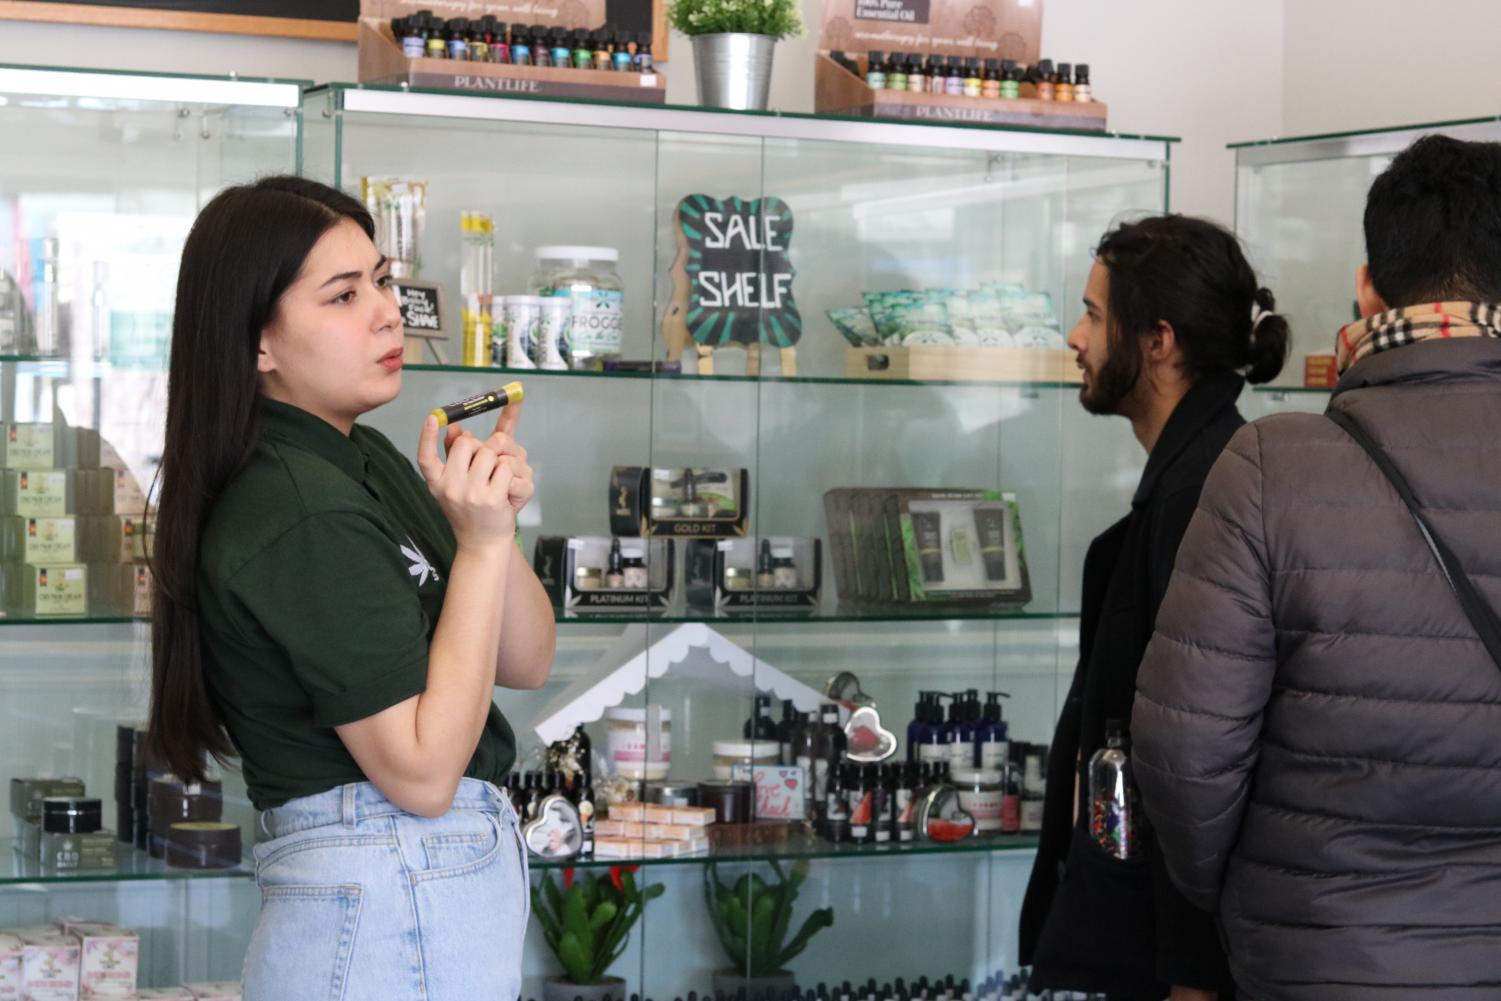 Danielle Larson, manager of CBD Kratom in Lakeview, gives customers the sales pitch on the store's products.